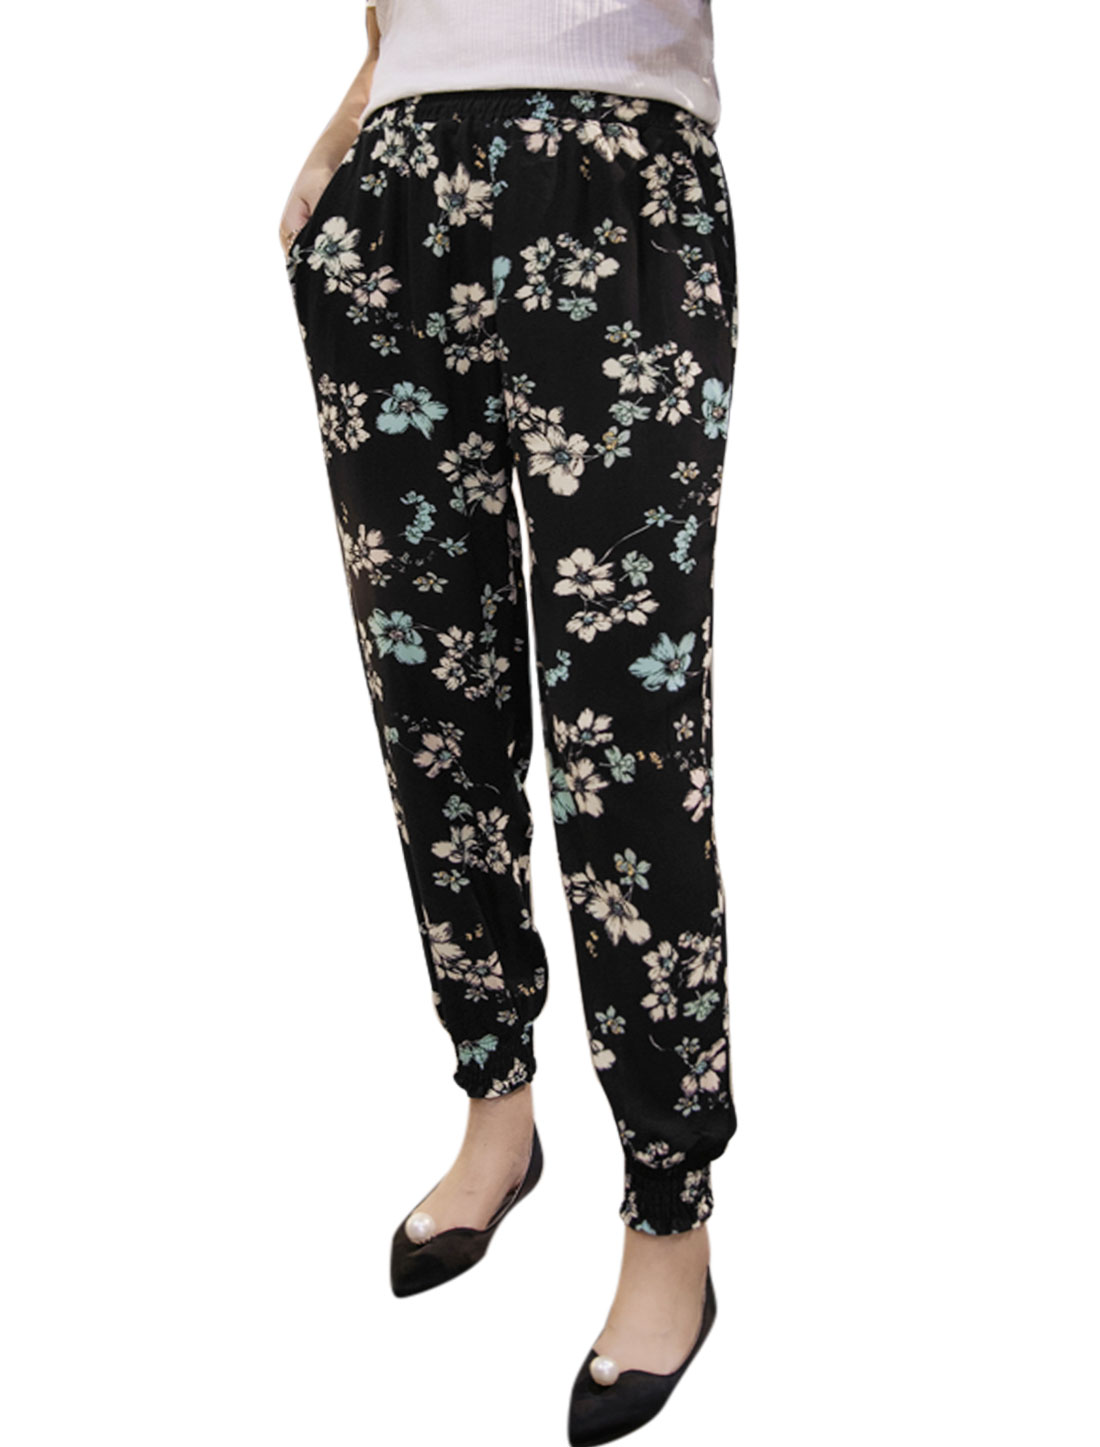 Women Elastic Waist Floral Prints Tapered Cropped Pants Black M